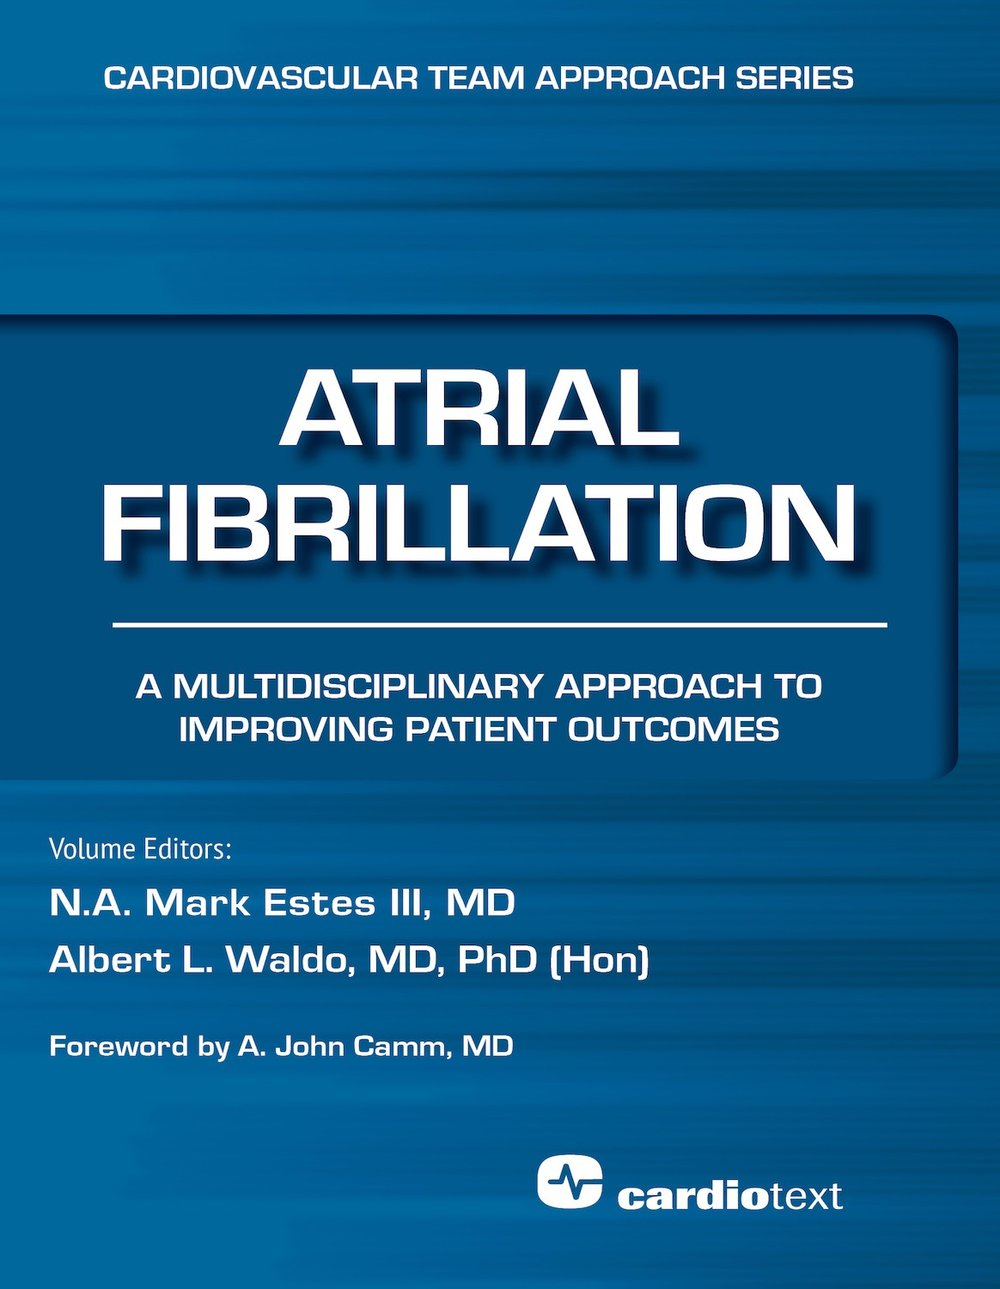 Atrial Fibrillation: A Multidisciplinary Approach to Improving Patient Outcomes